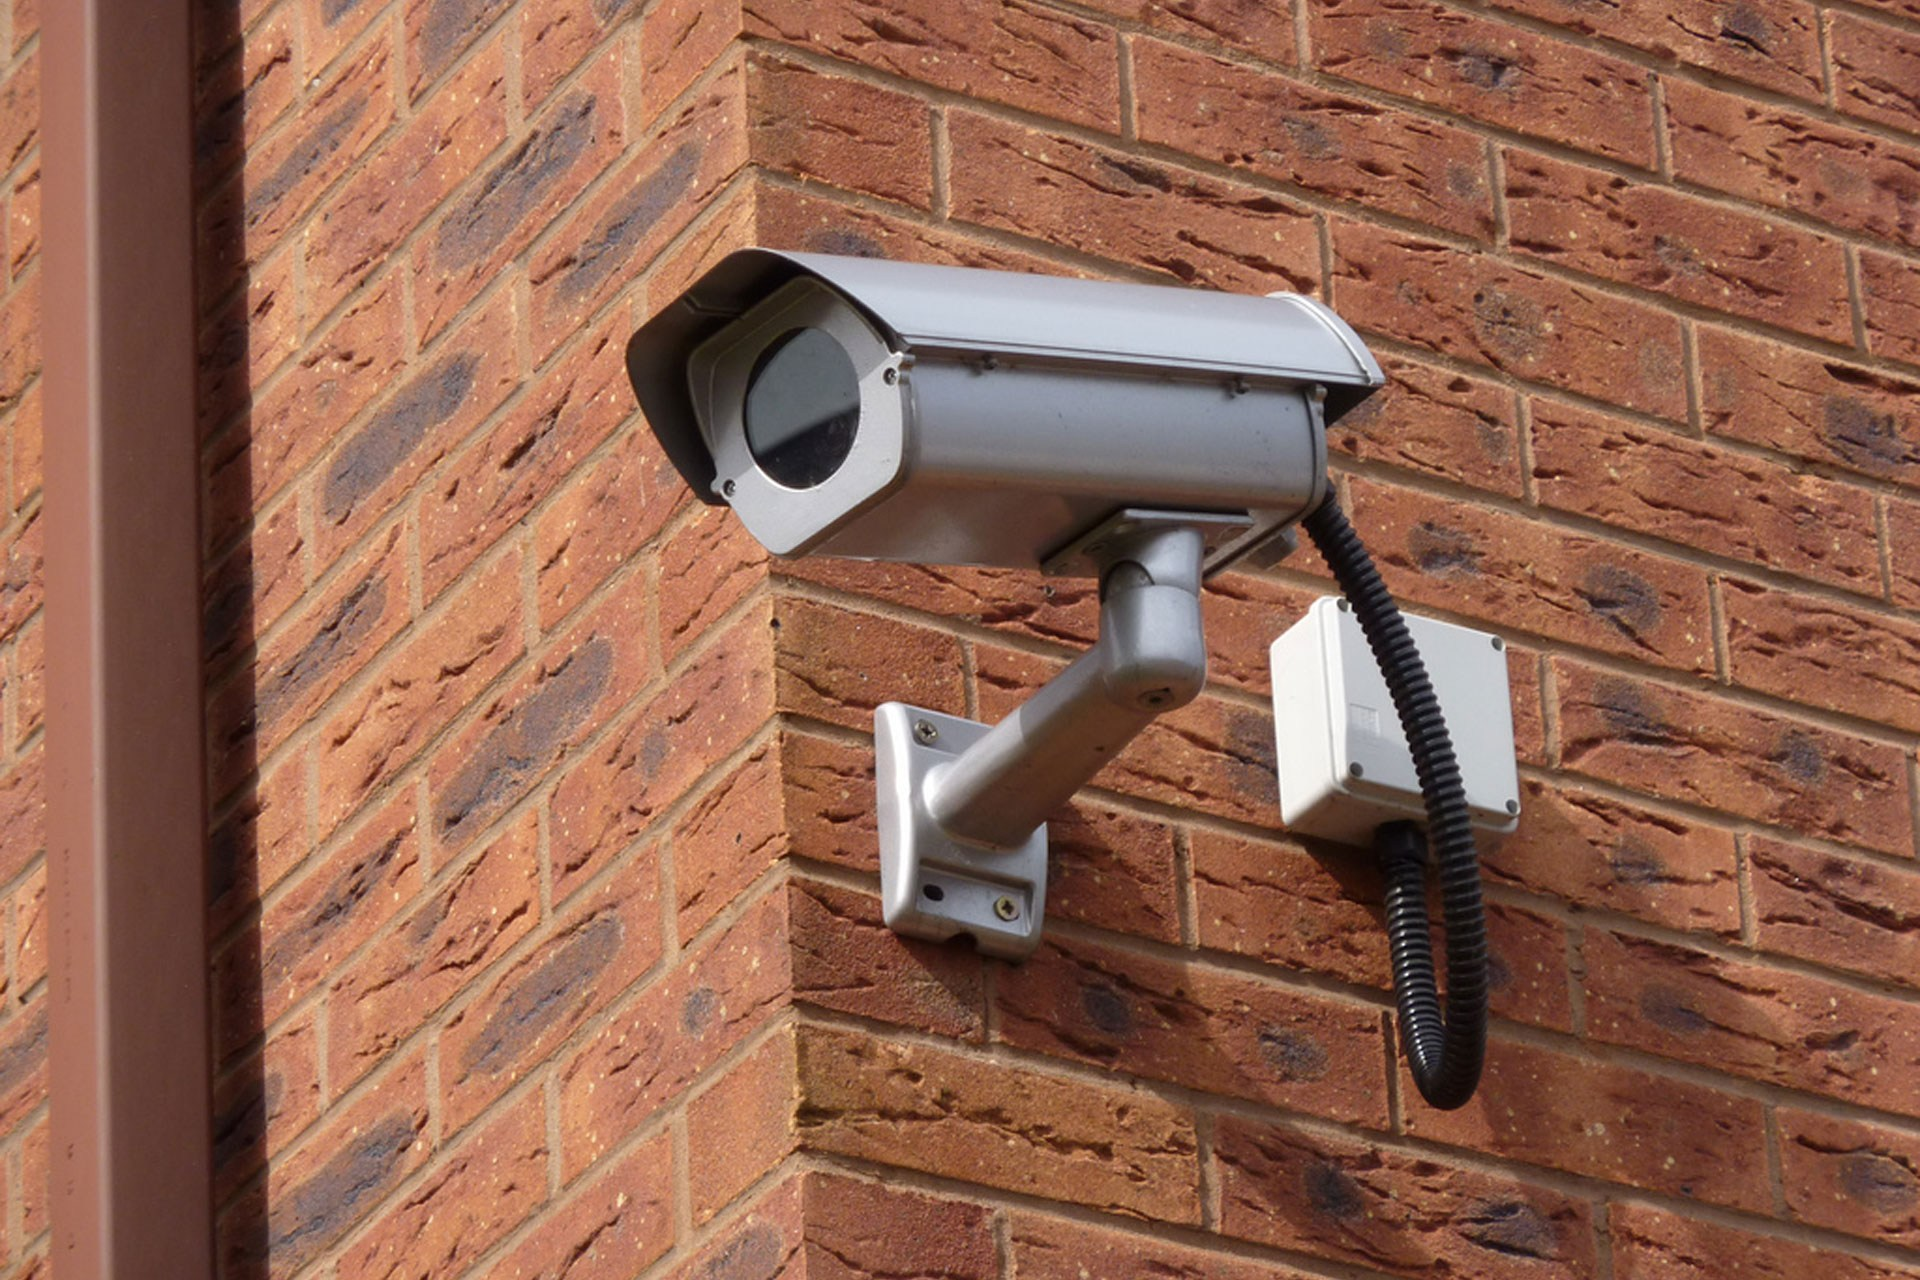 Cctv surveillance systems mode for Security devices for homes